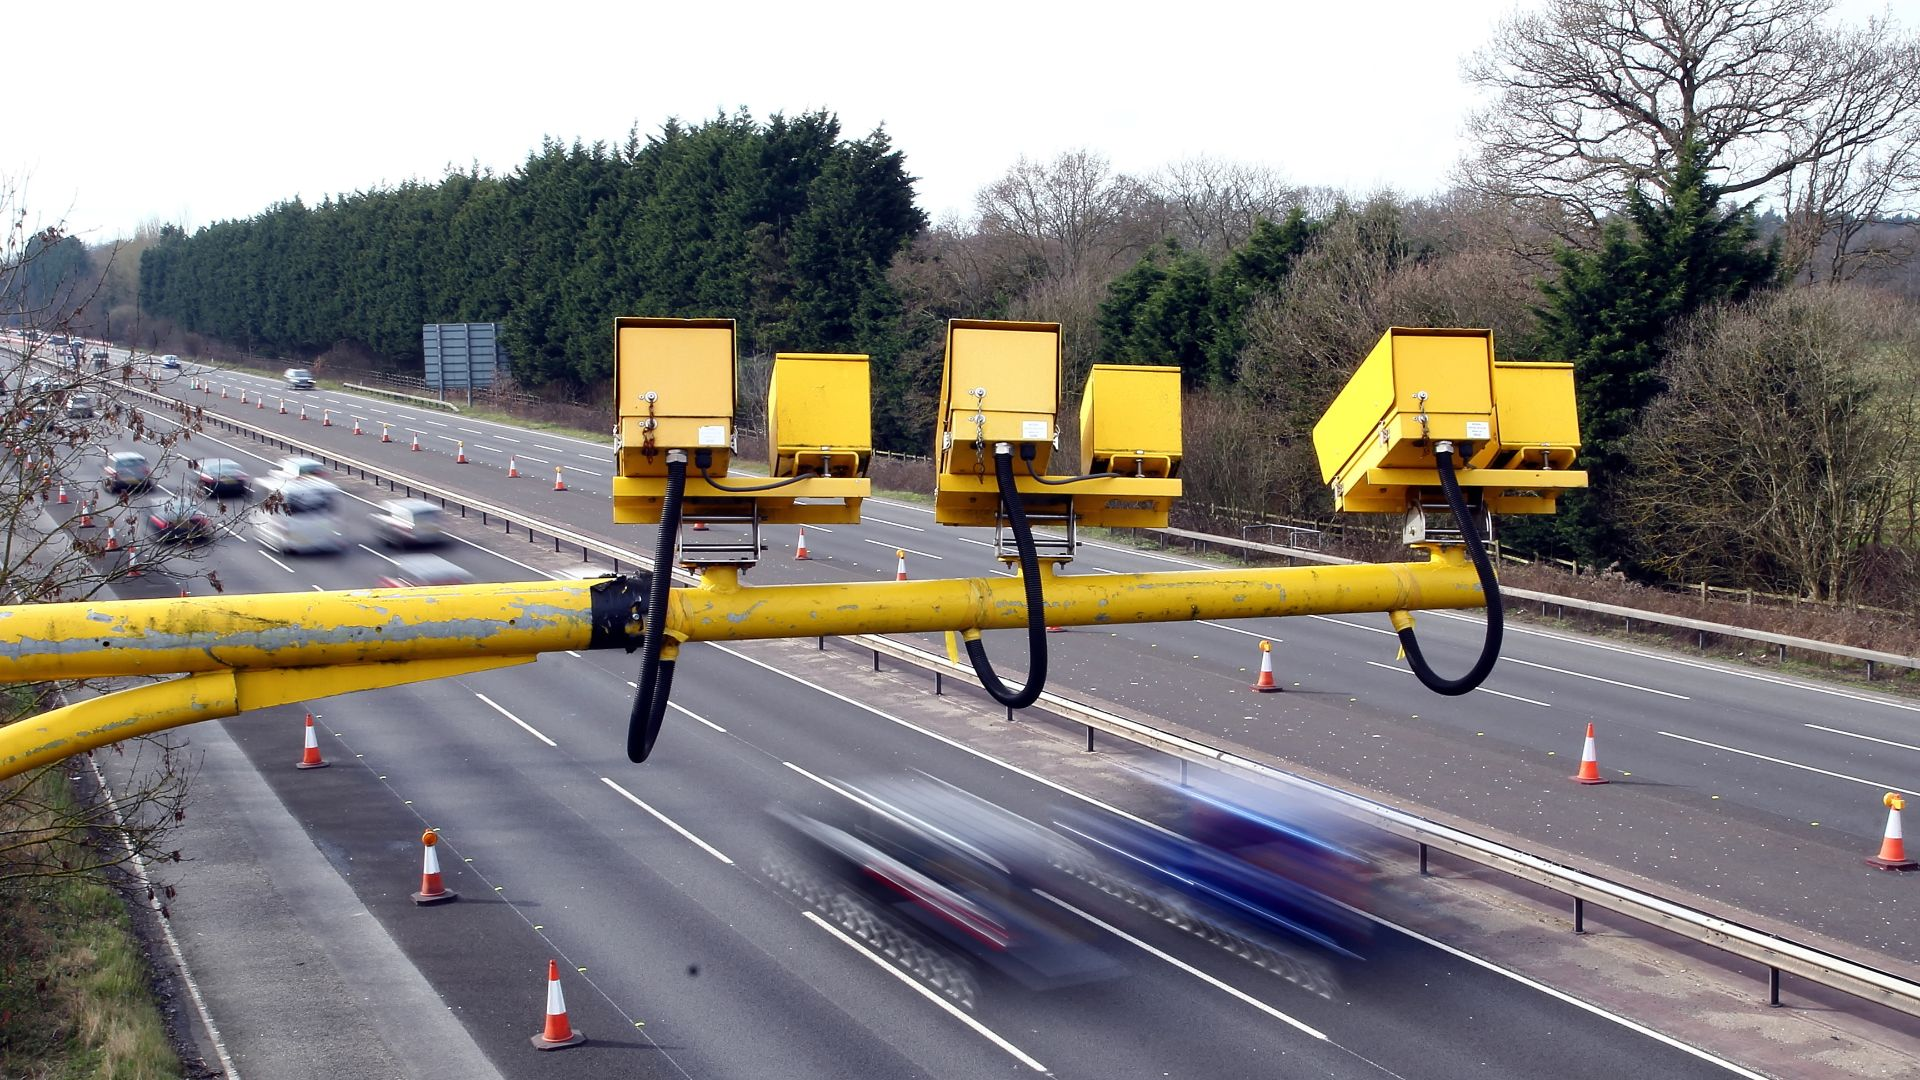 Britain's worst drivers revealed